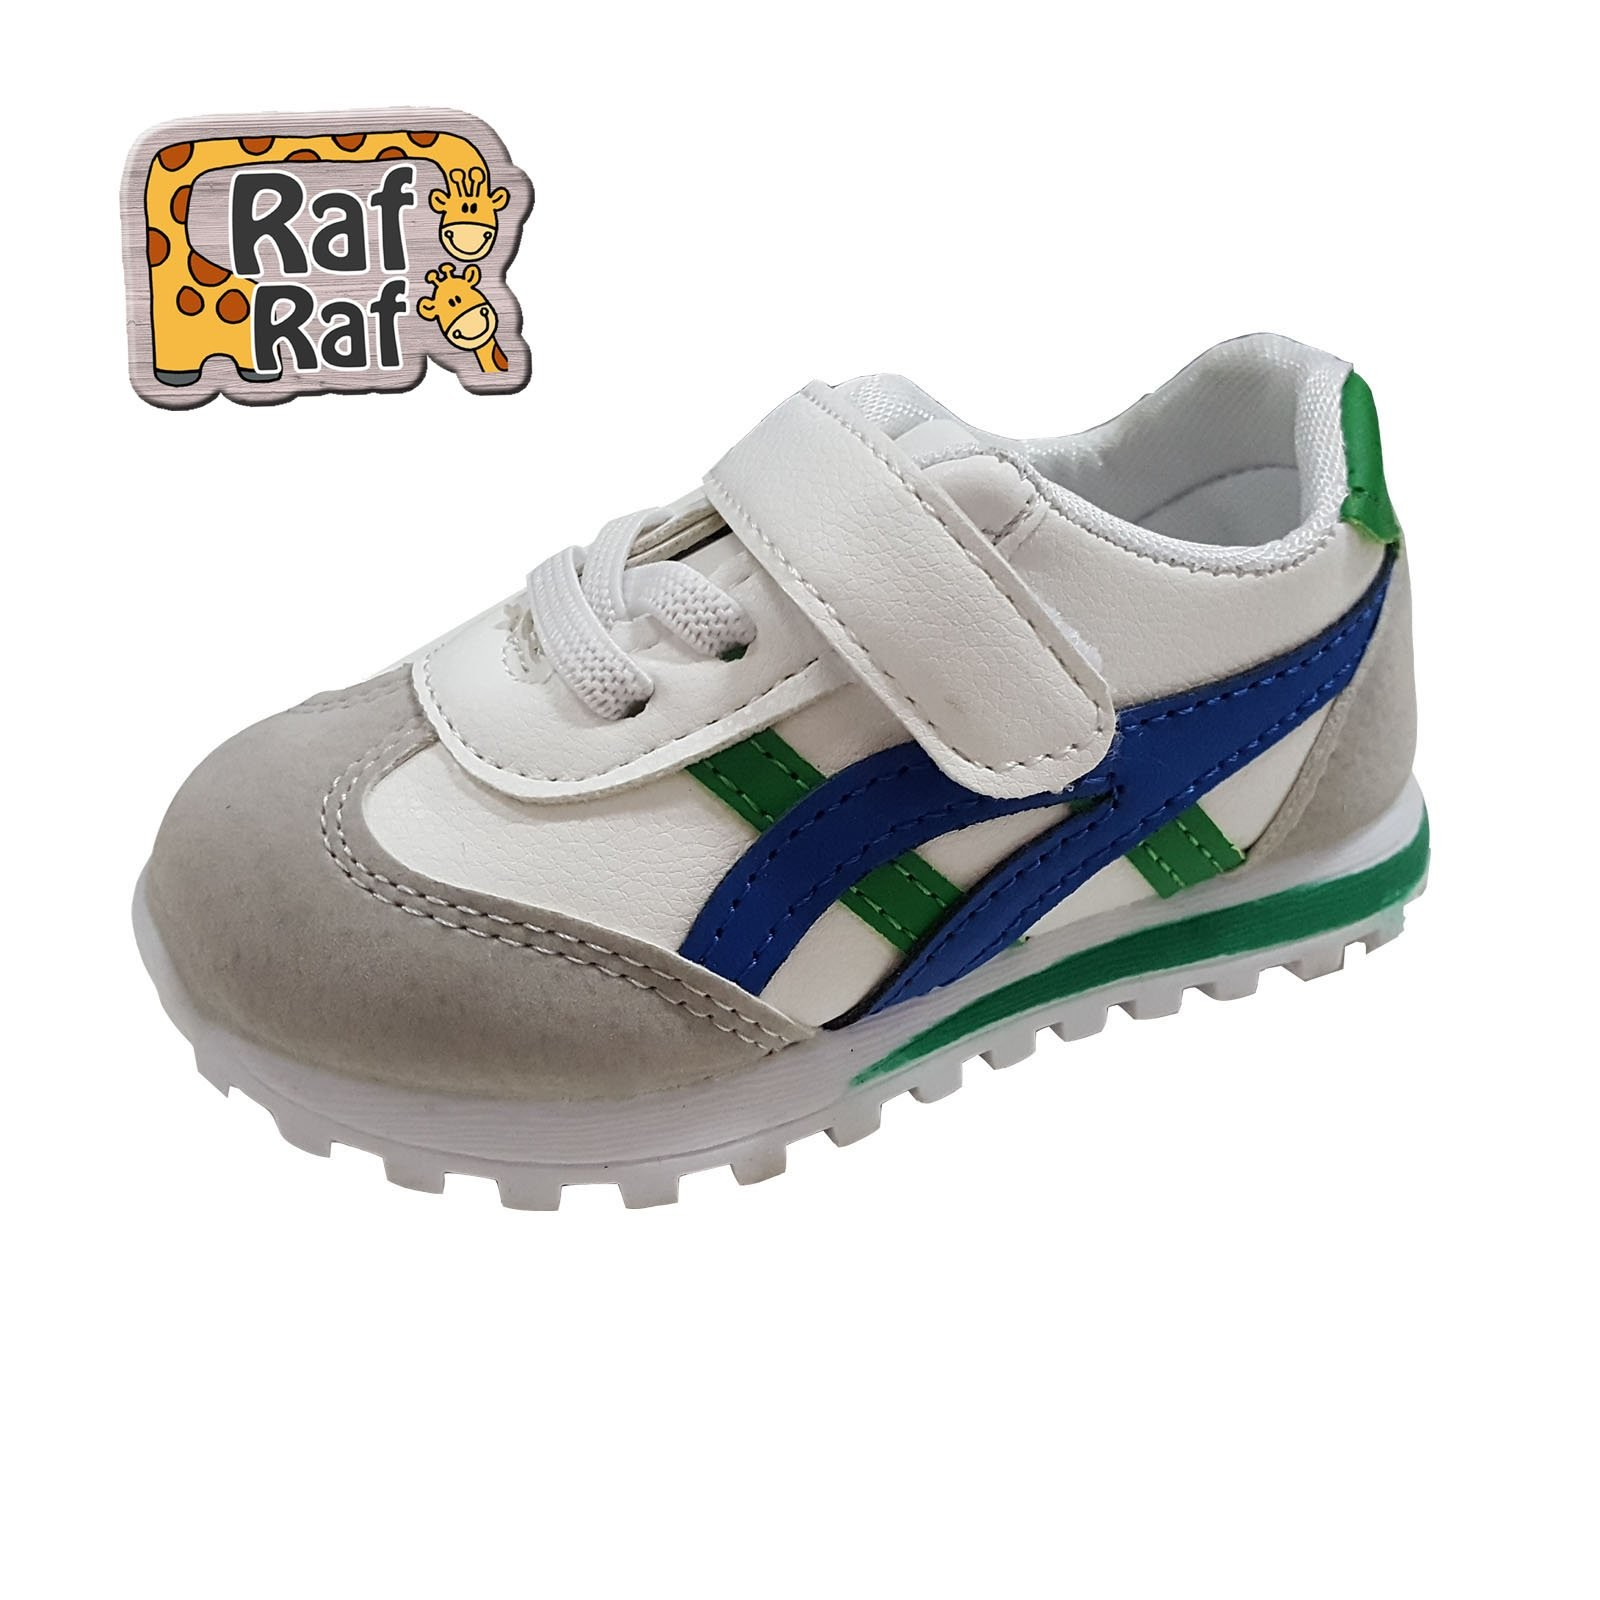 Raf Raf Sports Shoes (1-3 Years) - Green